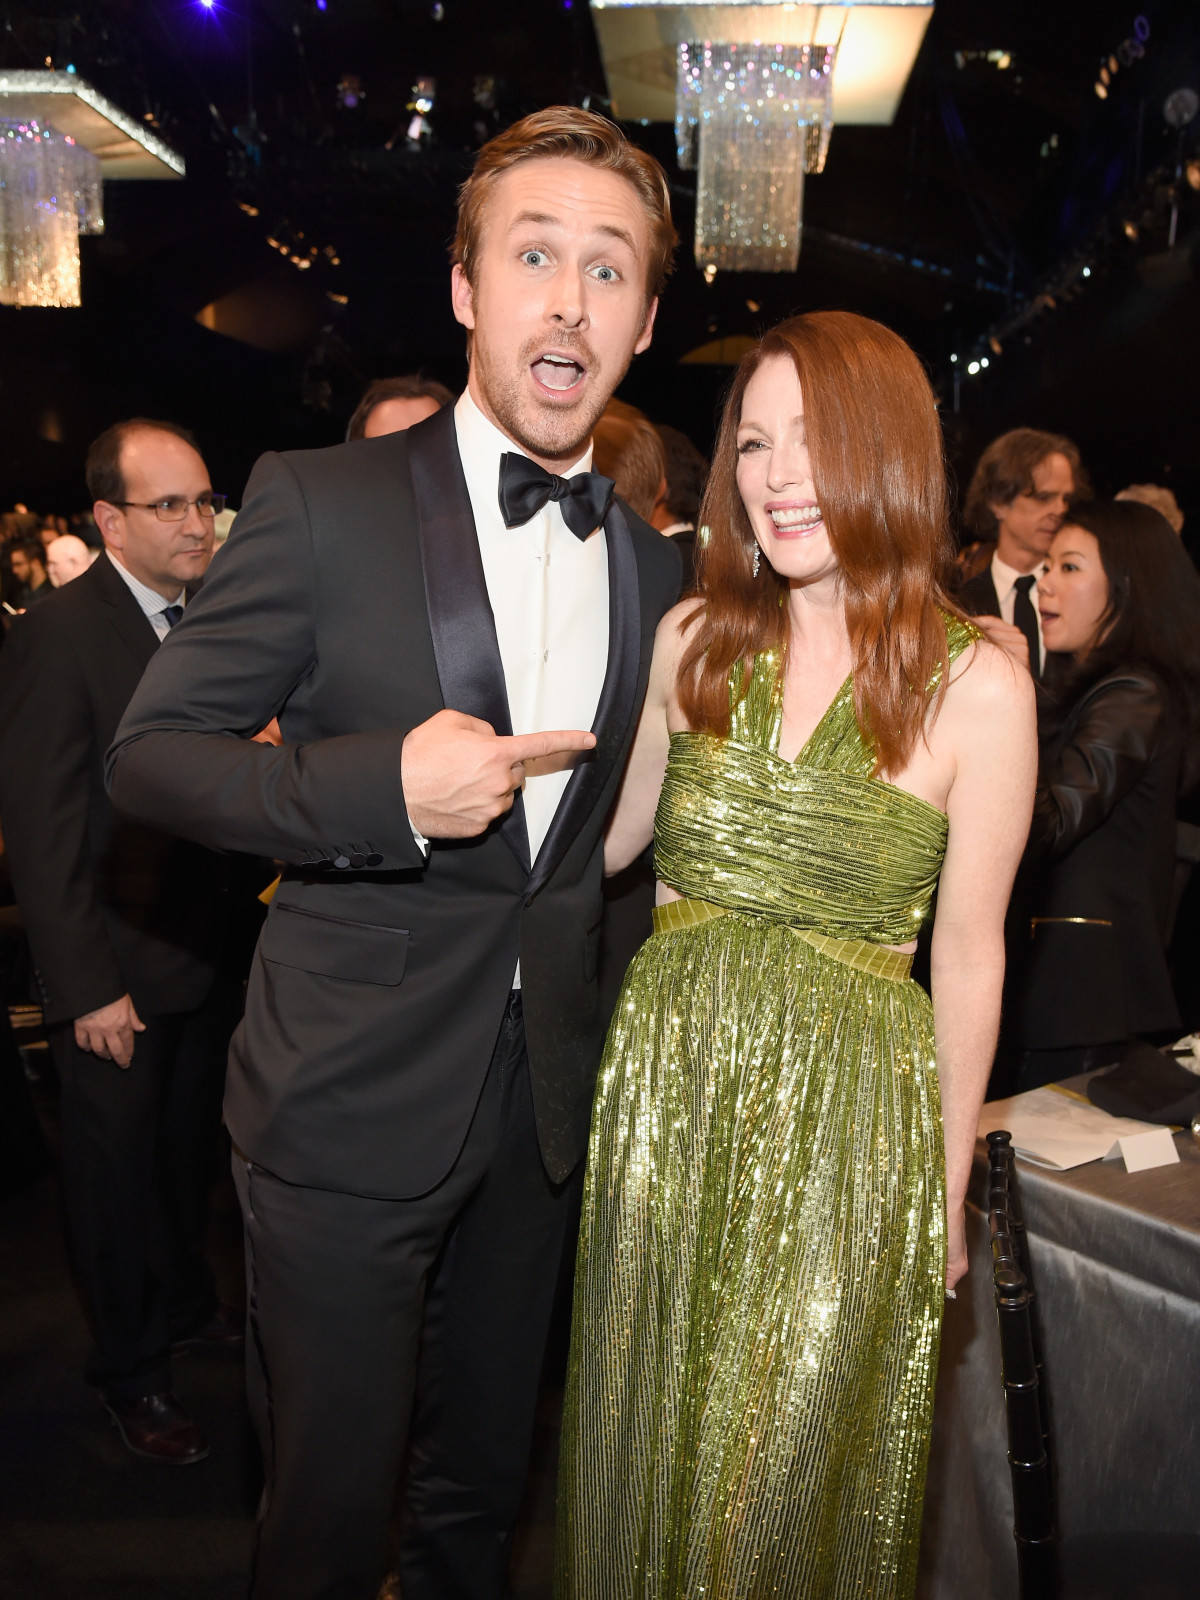 Ryan Gosling and Julianne Moore at Screen Actors Guild Awards